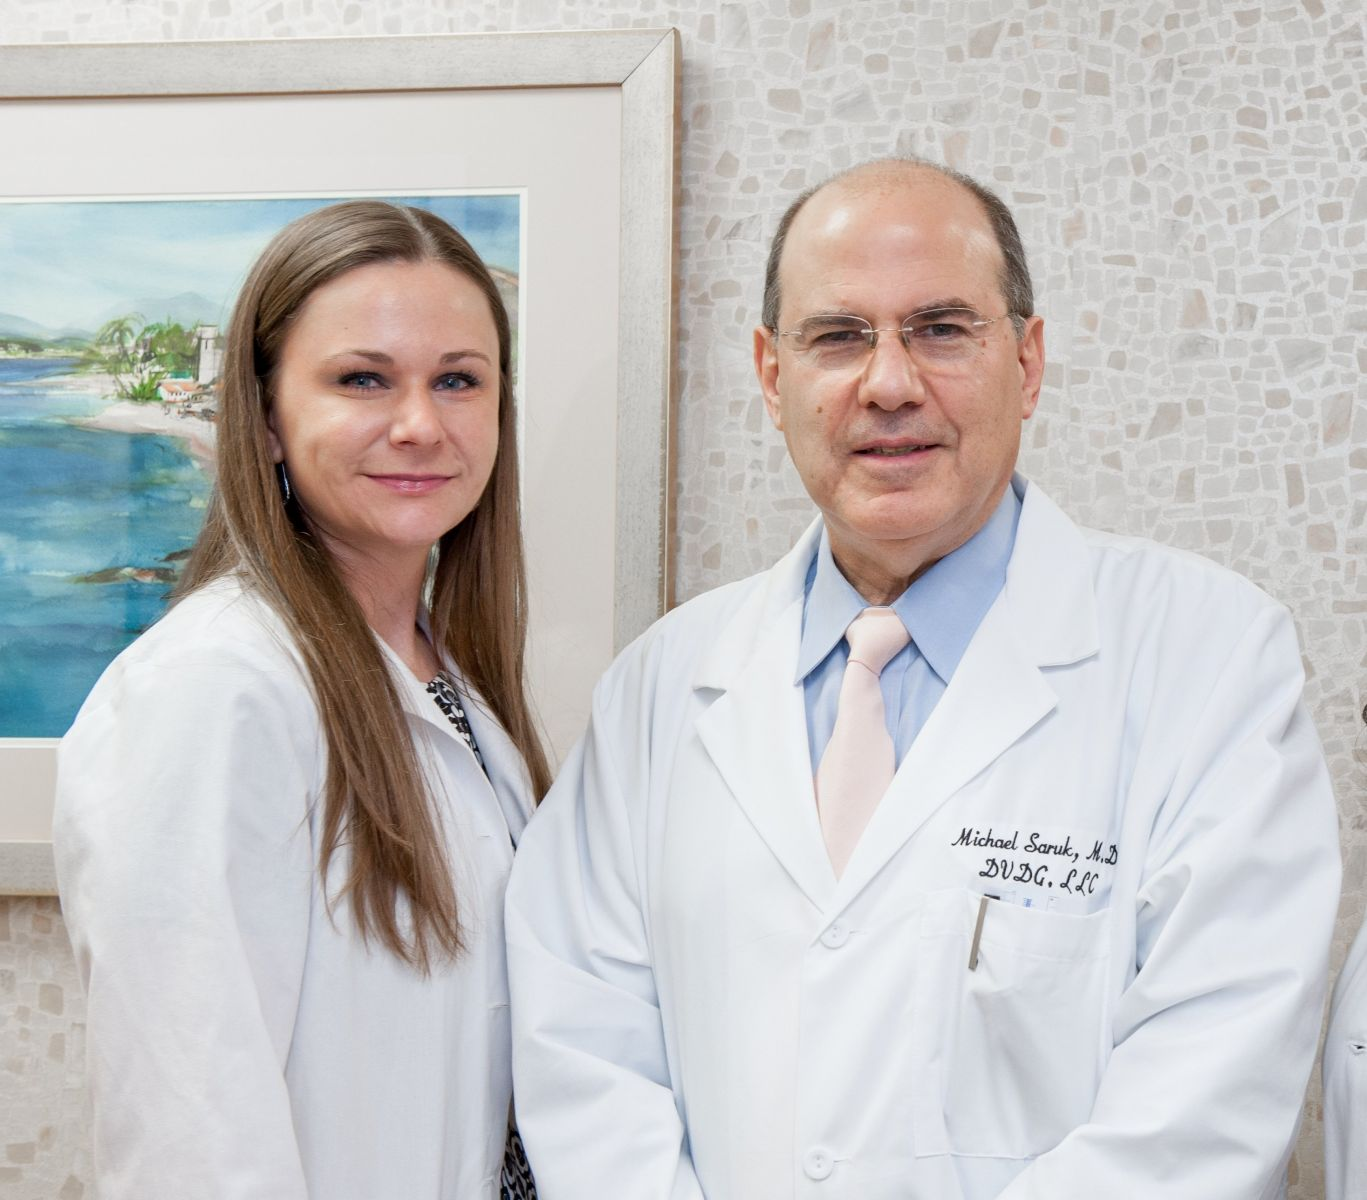 Wilmington Dermatologist - Delaware Valley Dermatology Group LLC - Wilmington DE